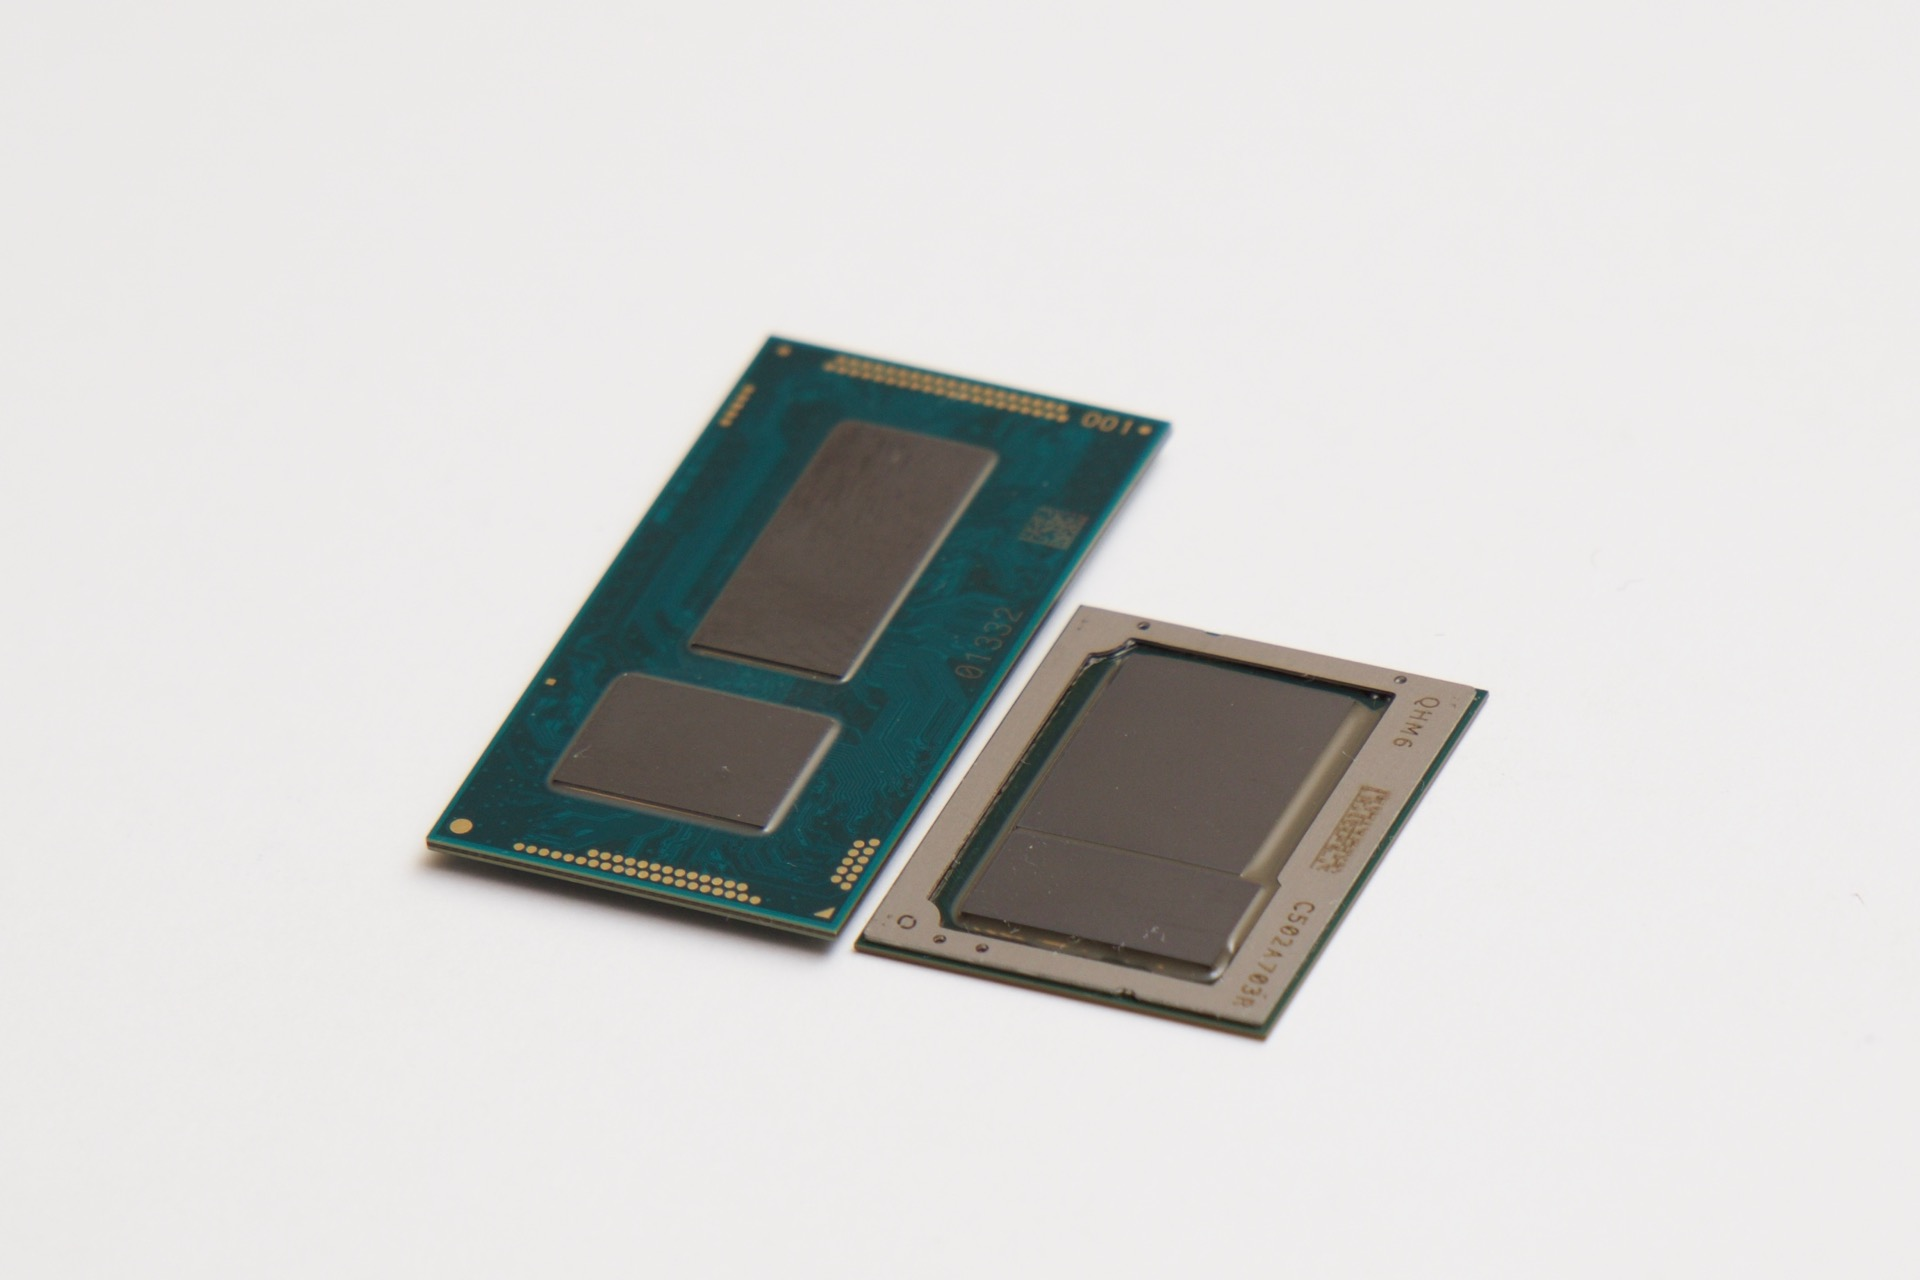 Intel Core M Skylake die (Ars Technica)